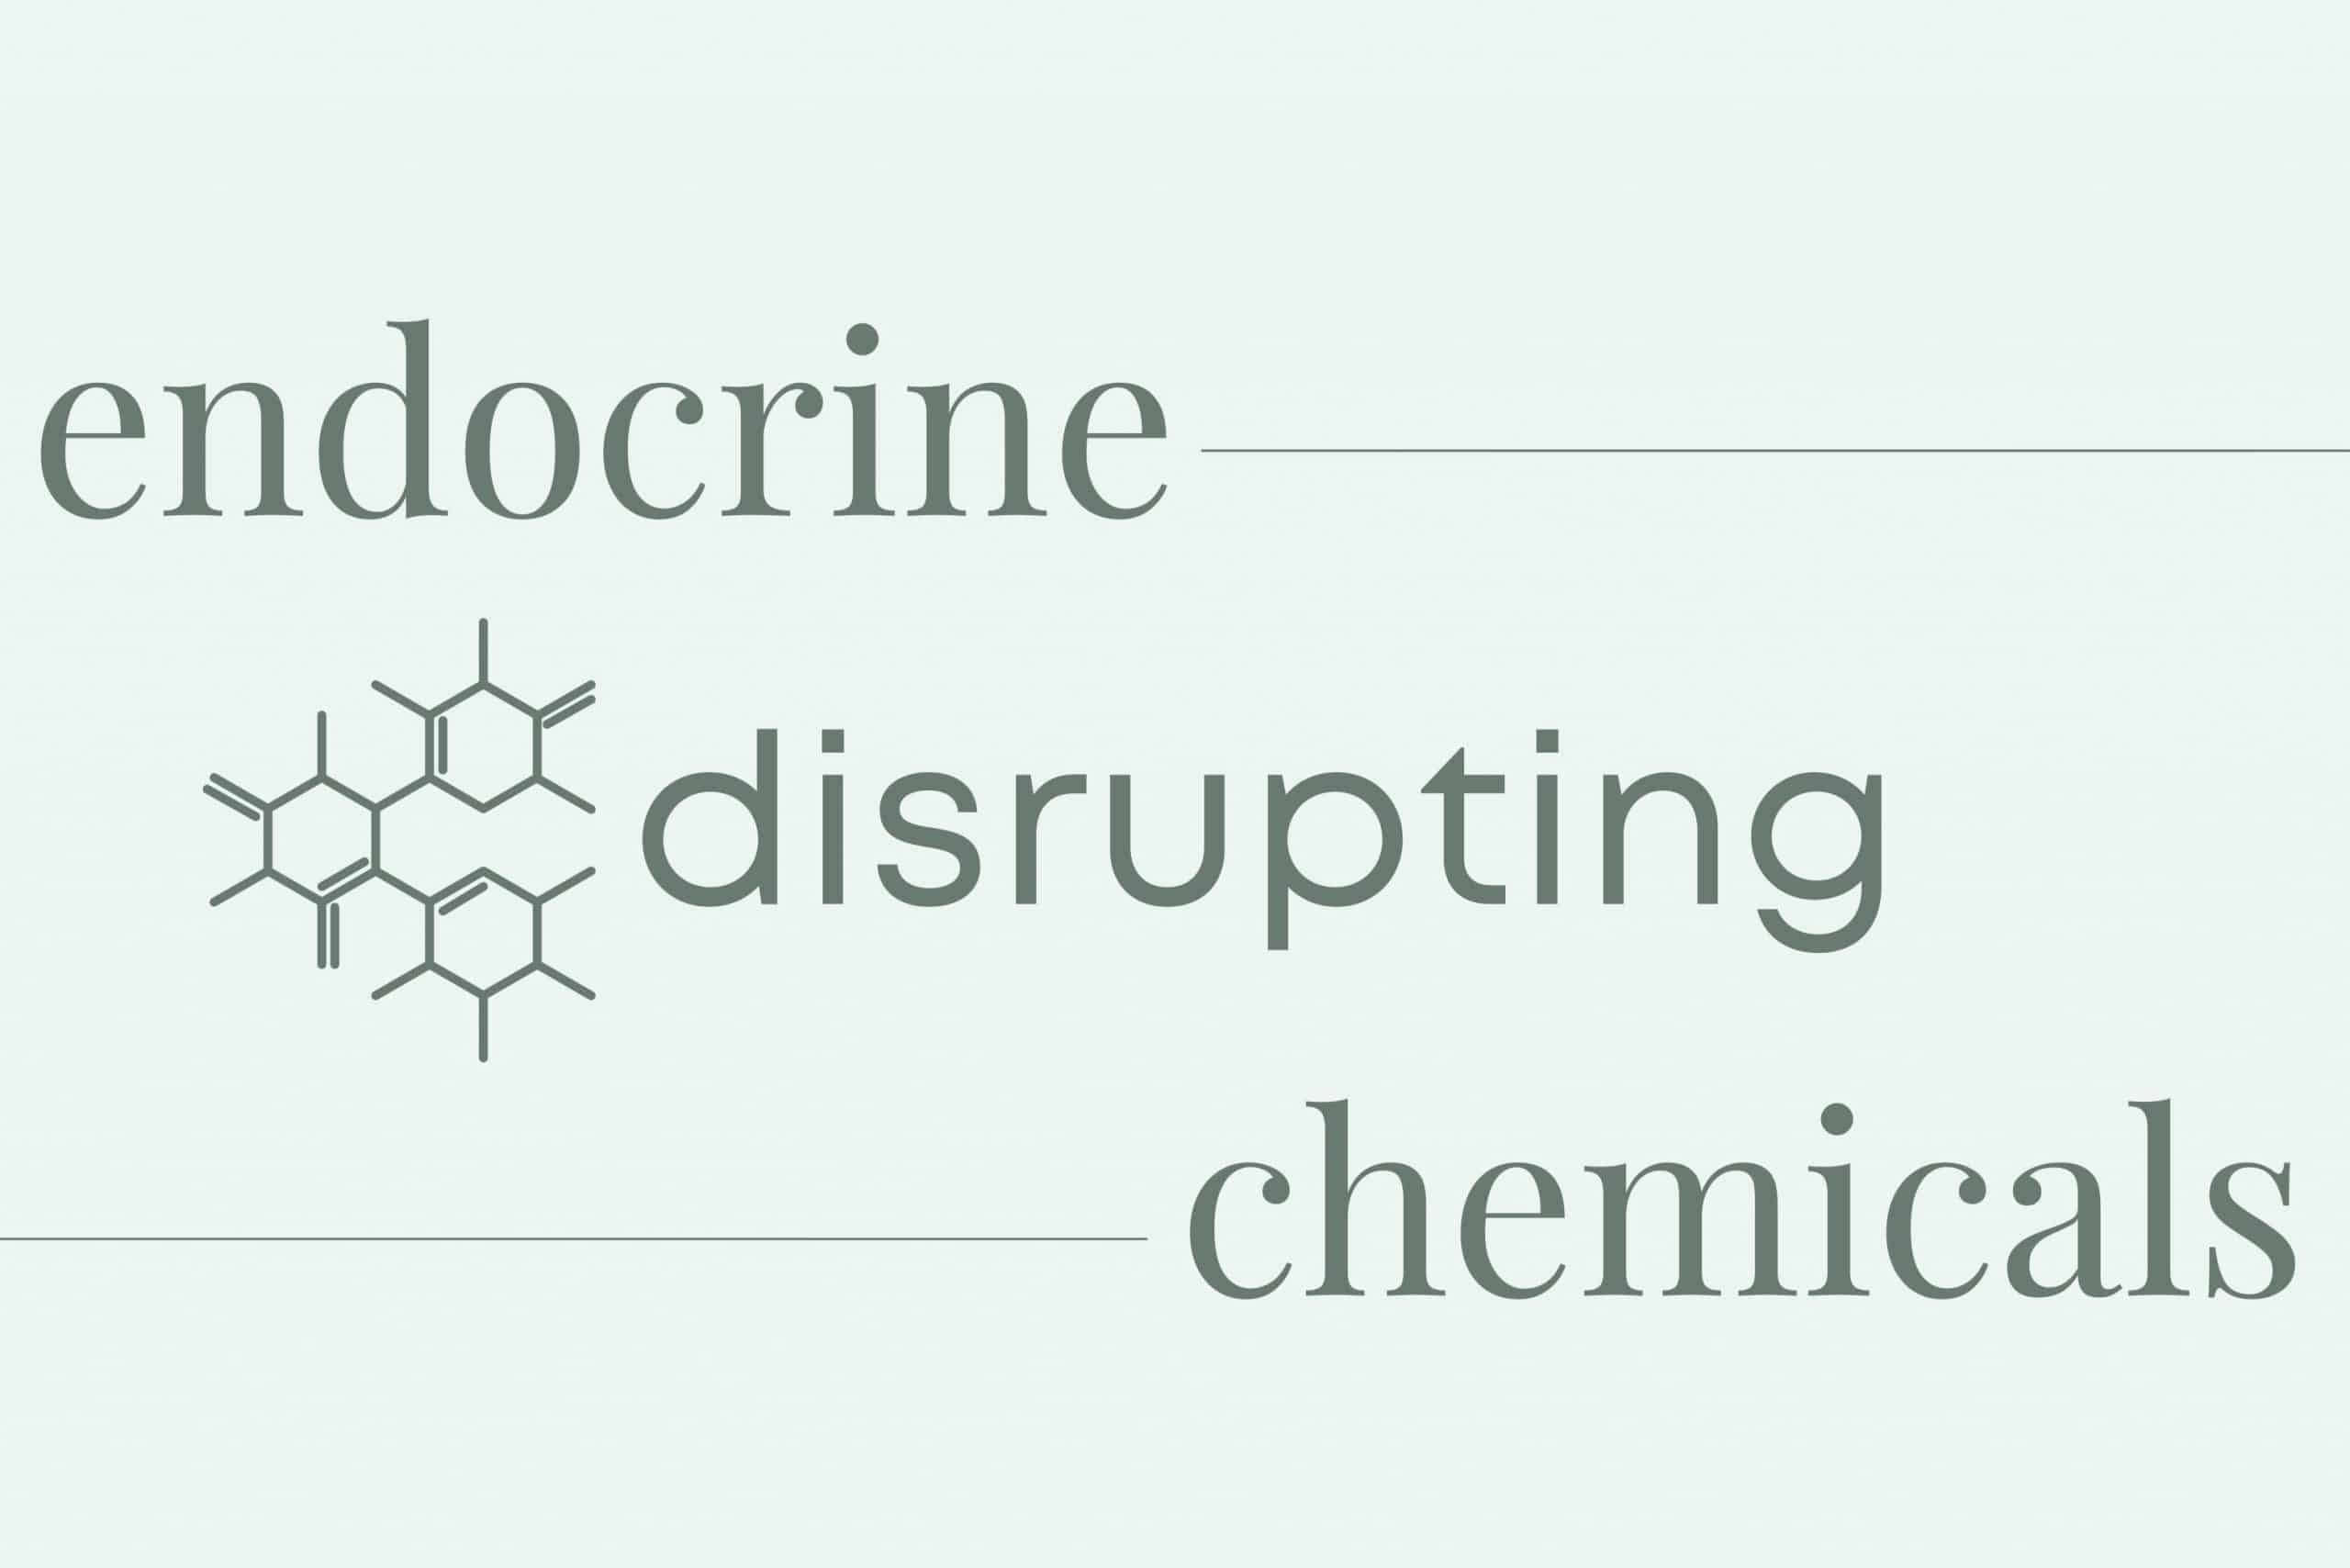 Endocrine Disrupting Chemicals with chemical symbol